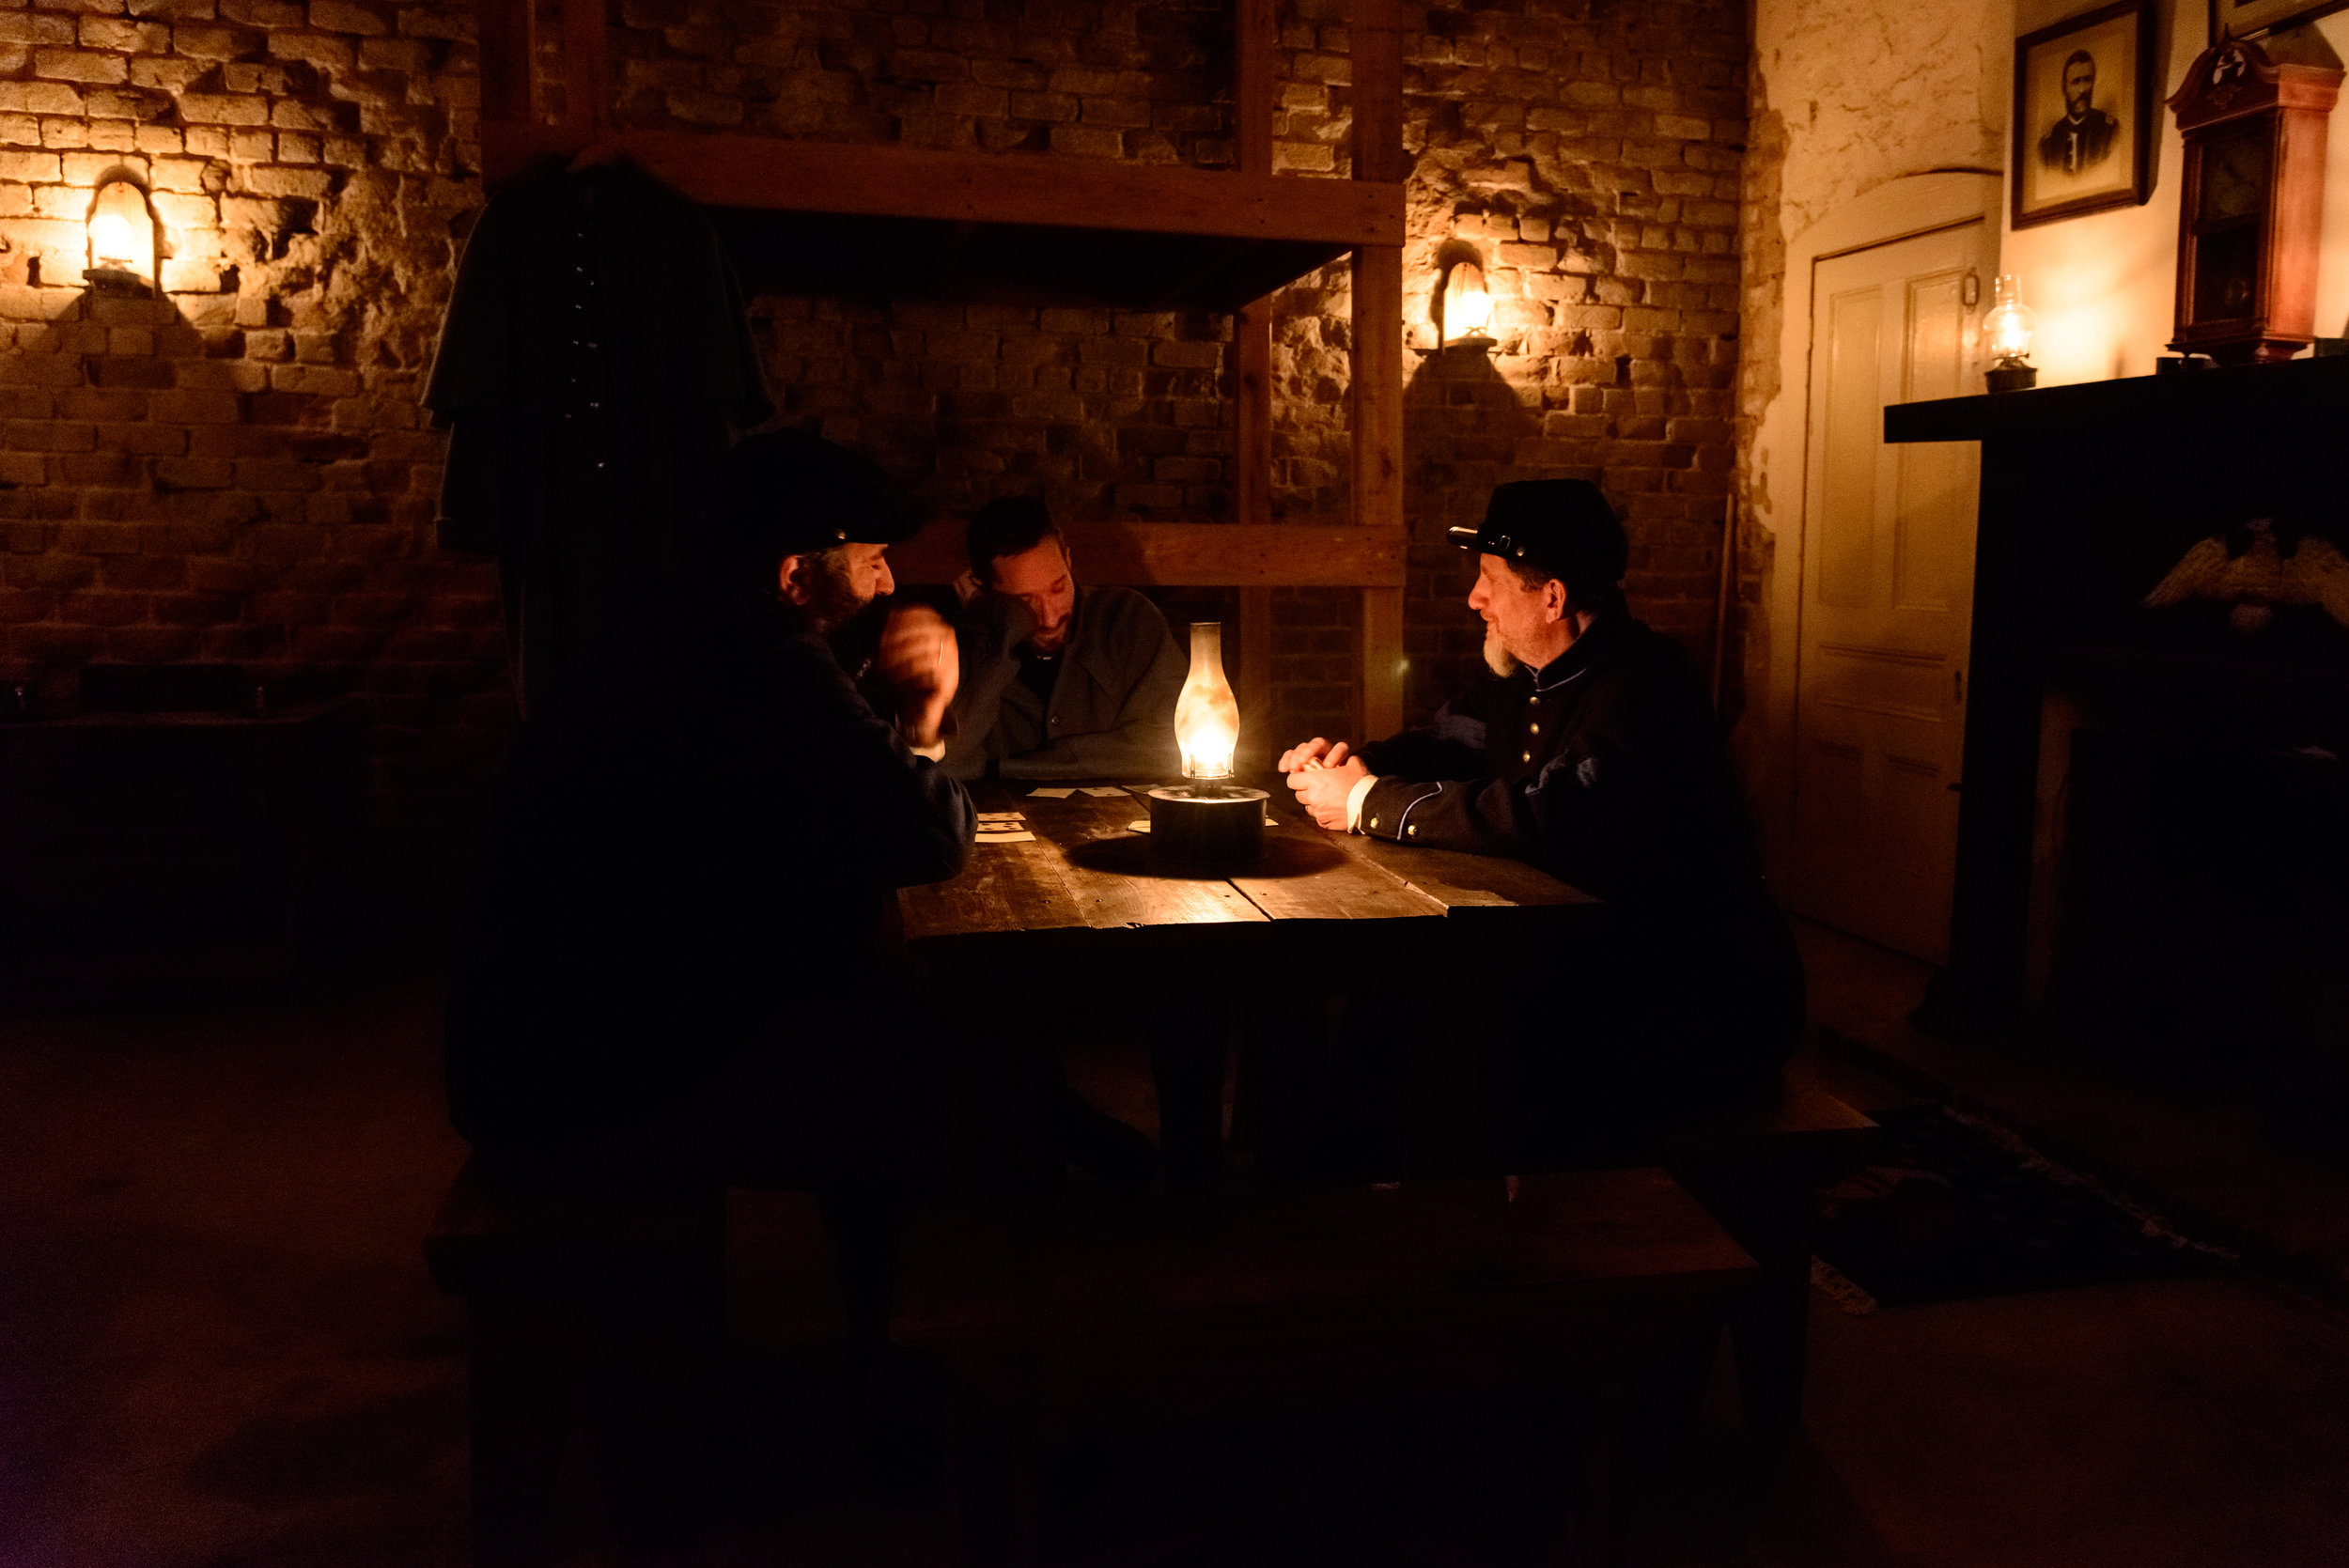 Volunteer re-enactors staying in the fort over night play cards to pass the time.